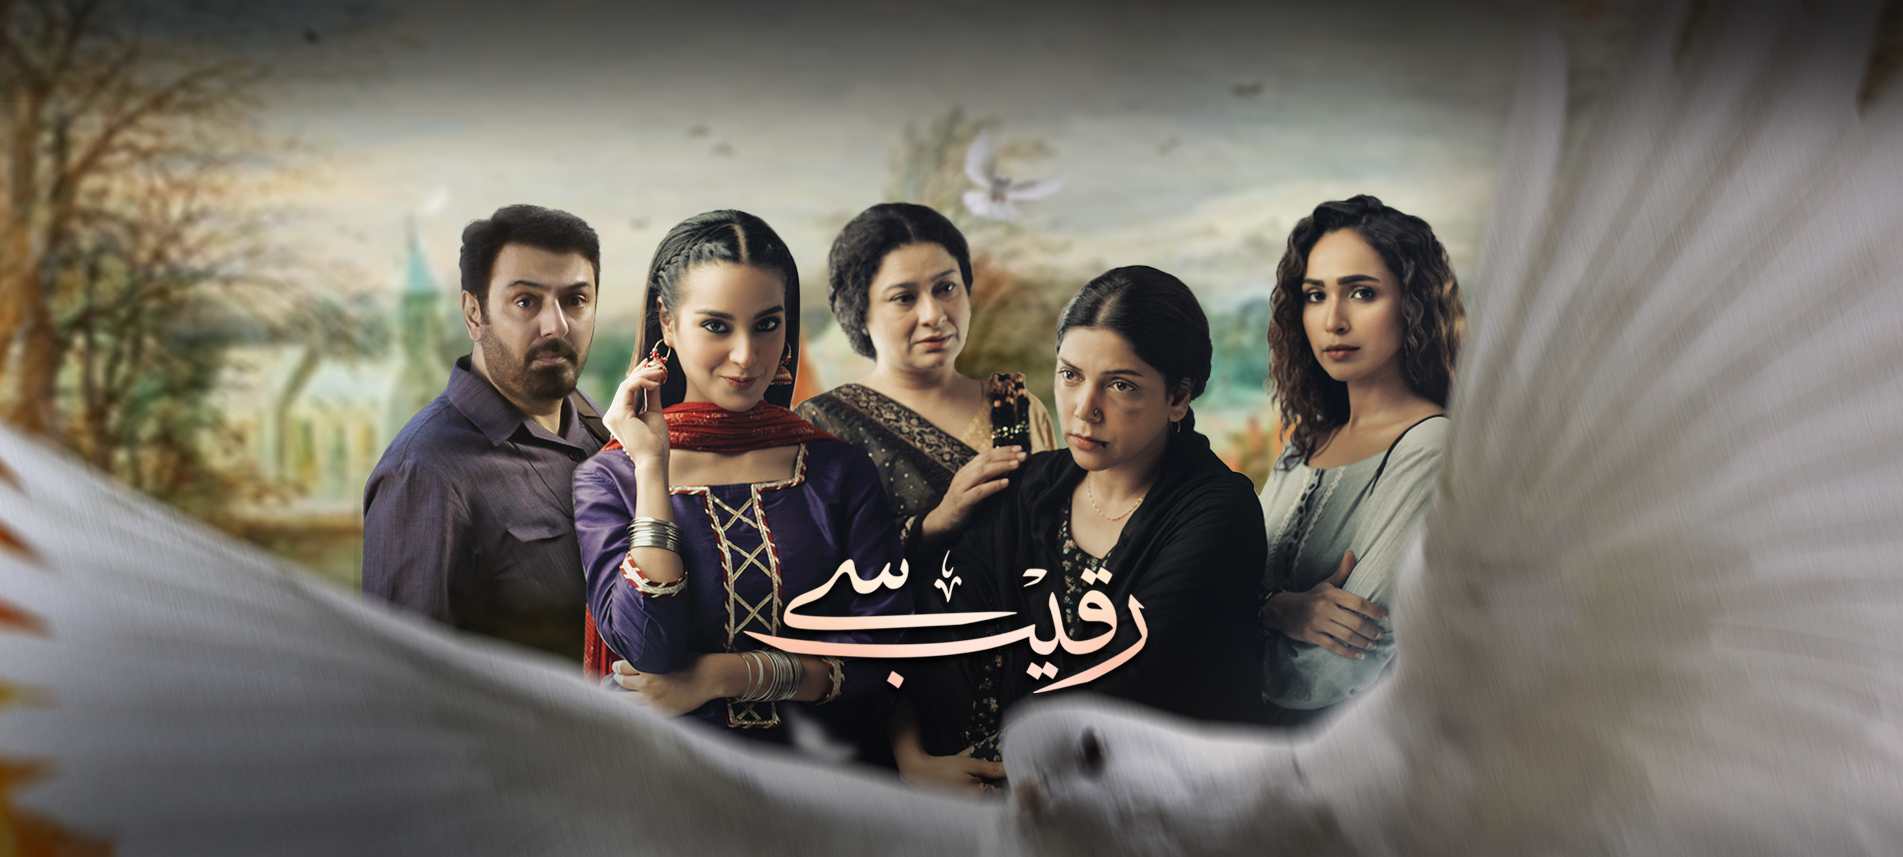 Drama serial Raqeeb Se has been going on-air while marking its success all the way with flawless acts and dialogues. Bee Gul has put all her heart into this script and Kashif Nisar has translated it well under his exceptional direction. With such an amazing cast like Nauman Ejaz, Sania Saeed, Hadiqa Kiani, Faryal Mehmood, and Iqra Aziz, how was that possible to expect a little from this project? As soon as it went on-air, it instantly hooked everyone with its plot and theme that we usually see in theatrical performances. Well... the drama Raqeeb Se has now reached its second last episode while unveiling the pinnacles that make it an unforgettable serial. Here is a crux of the latest episode that describes how deep a writer can think to make a romantic story impossibly possible. Take a look! Raqeeb Se - The Story Unveils Climax While Making It Unforgettable! Hajra Opens Up about Insha's Relation with Maqsood Sahab The most important yet heartfelt scene of the episode was when Hajra reveals the reality of Insha's relation with Maqsood Sahab. Hajra told Insha that she is not the biological daughter of Maqsood Ahmad. Her father was someone so cruel and wild who left Hajra when she was 6-months pregnant with Insha. Insha was in shock and couldn't control her tears to roll out with a storm of emotions she had inside. Maqsood Sahab covered the situation and tried to console his daughter. However, Insha had her complaint about not getting the love of a father. It was all about how Maqsood Ahmad has been living in the past when his brother got murdered. He admitted that he never moved on but his life stopped at the moment when he got the news of Mansoor's death. Ameera's Regrets and Apology to Hajra As the drama progressed, it uncovered the chapter of regrets and then the realization of seeking an apology. Ameera had already surrendered her love for Maqsood Sahab after dramatically attempting to commit suicide. Moreover, When Maqsood Sahab made her understand that it is usel